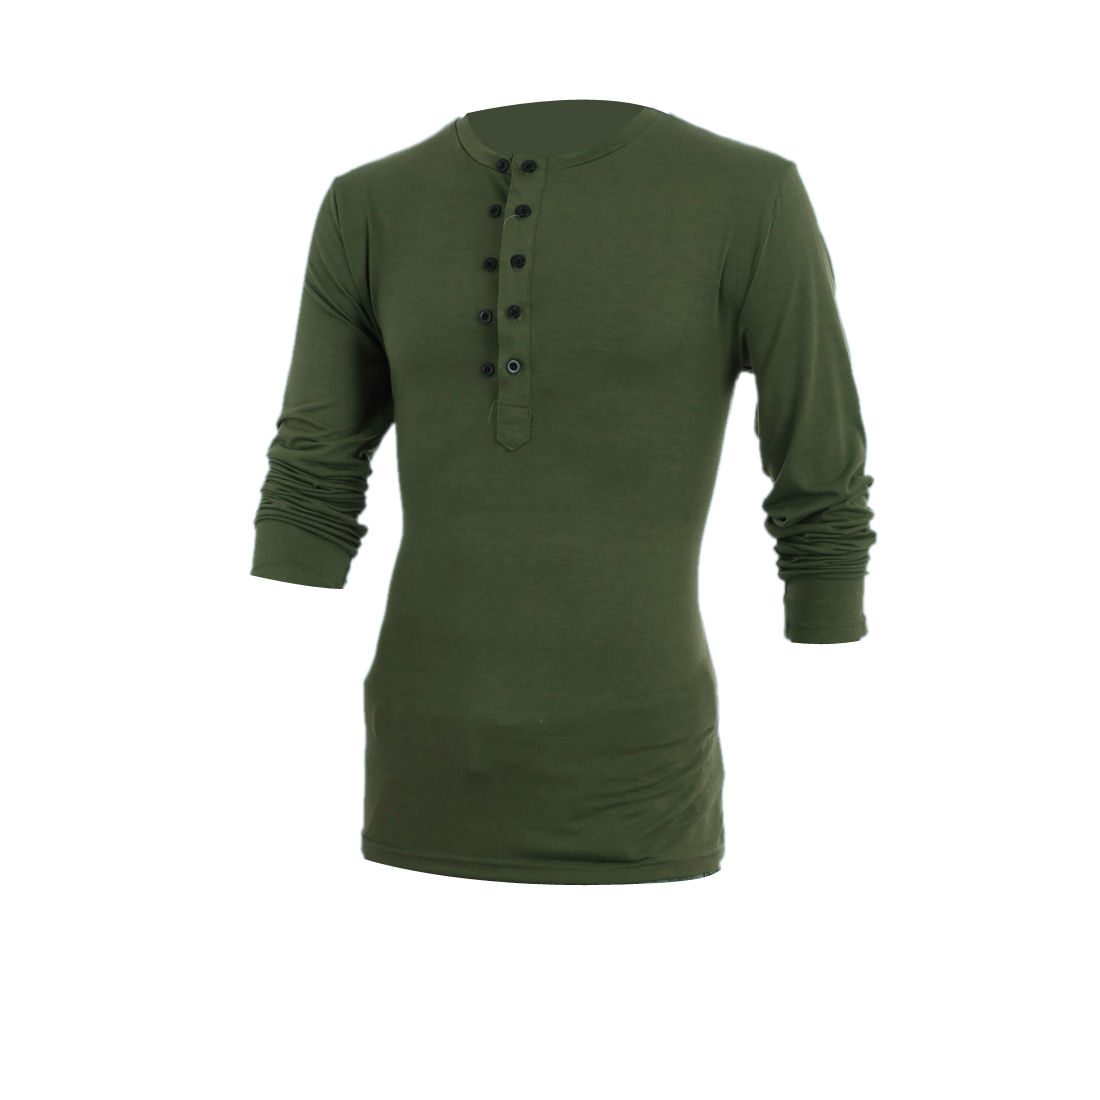 Mens Chic Round Neck Long Sleeve Double-Breasted Front Army Green Top Shirt M